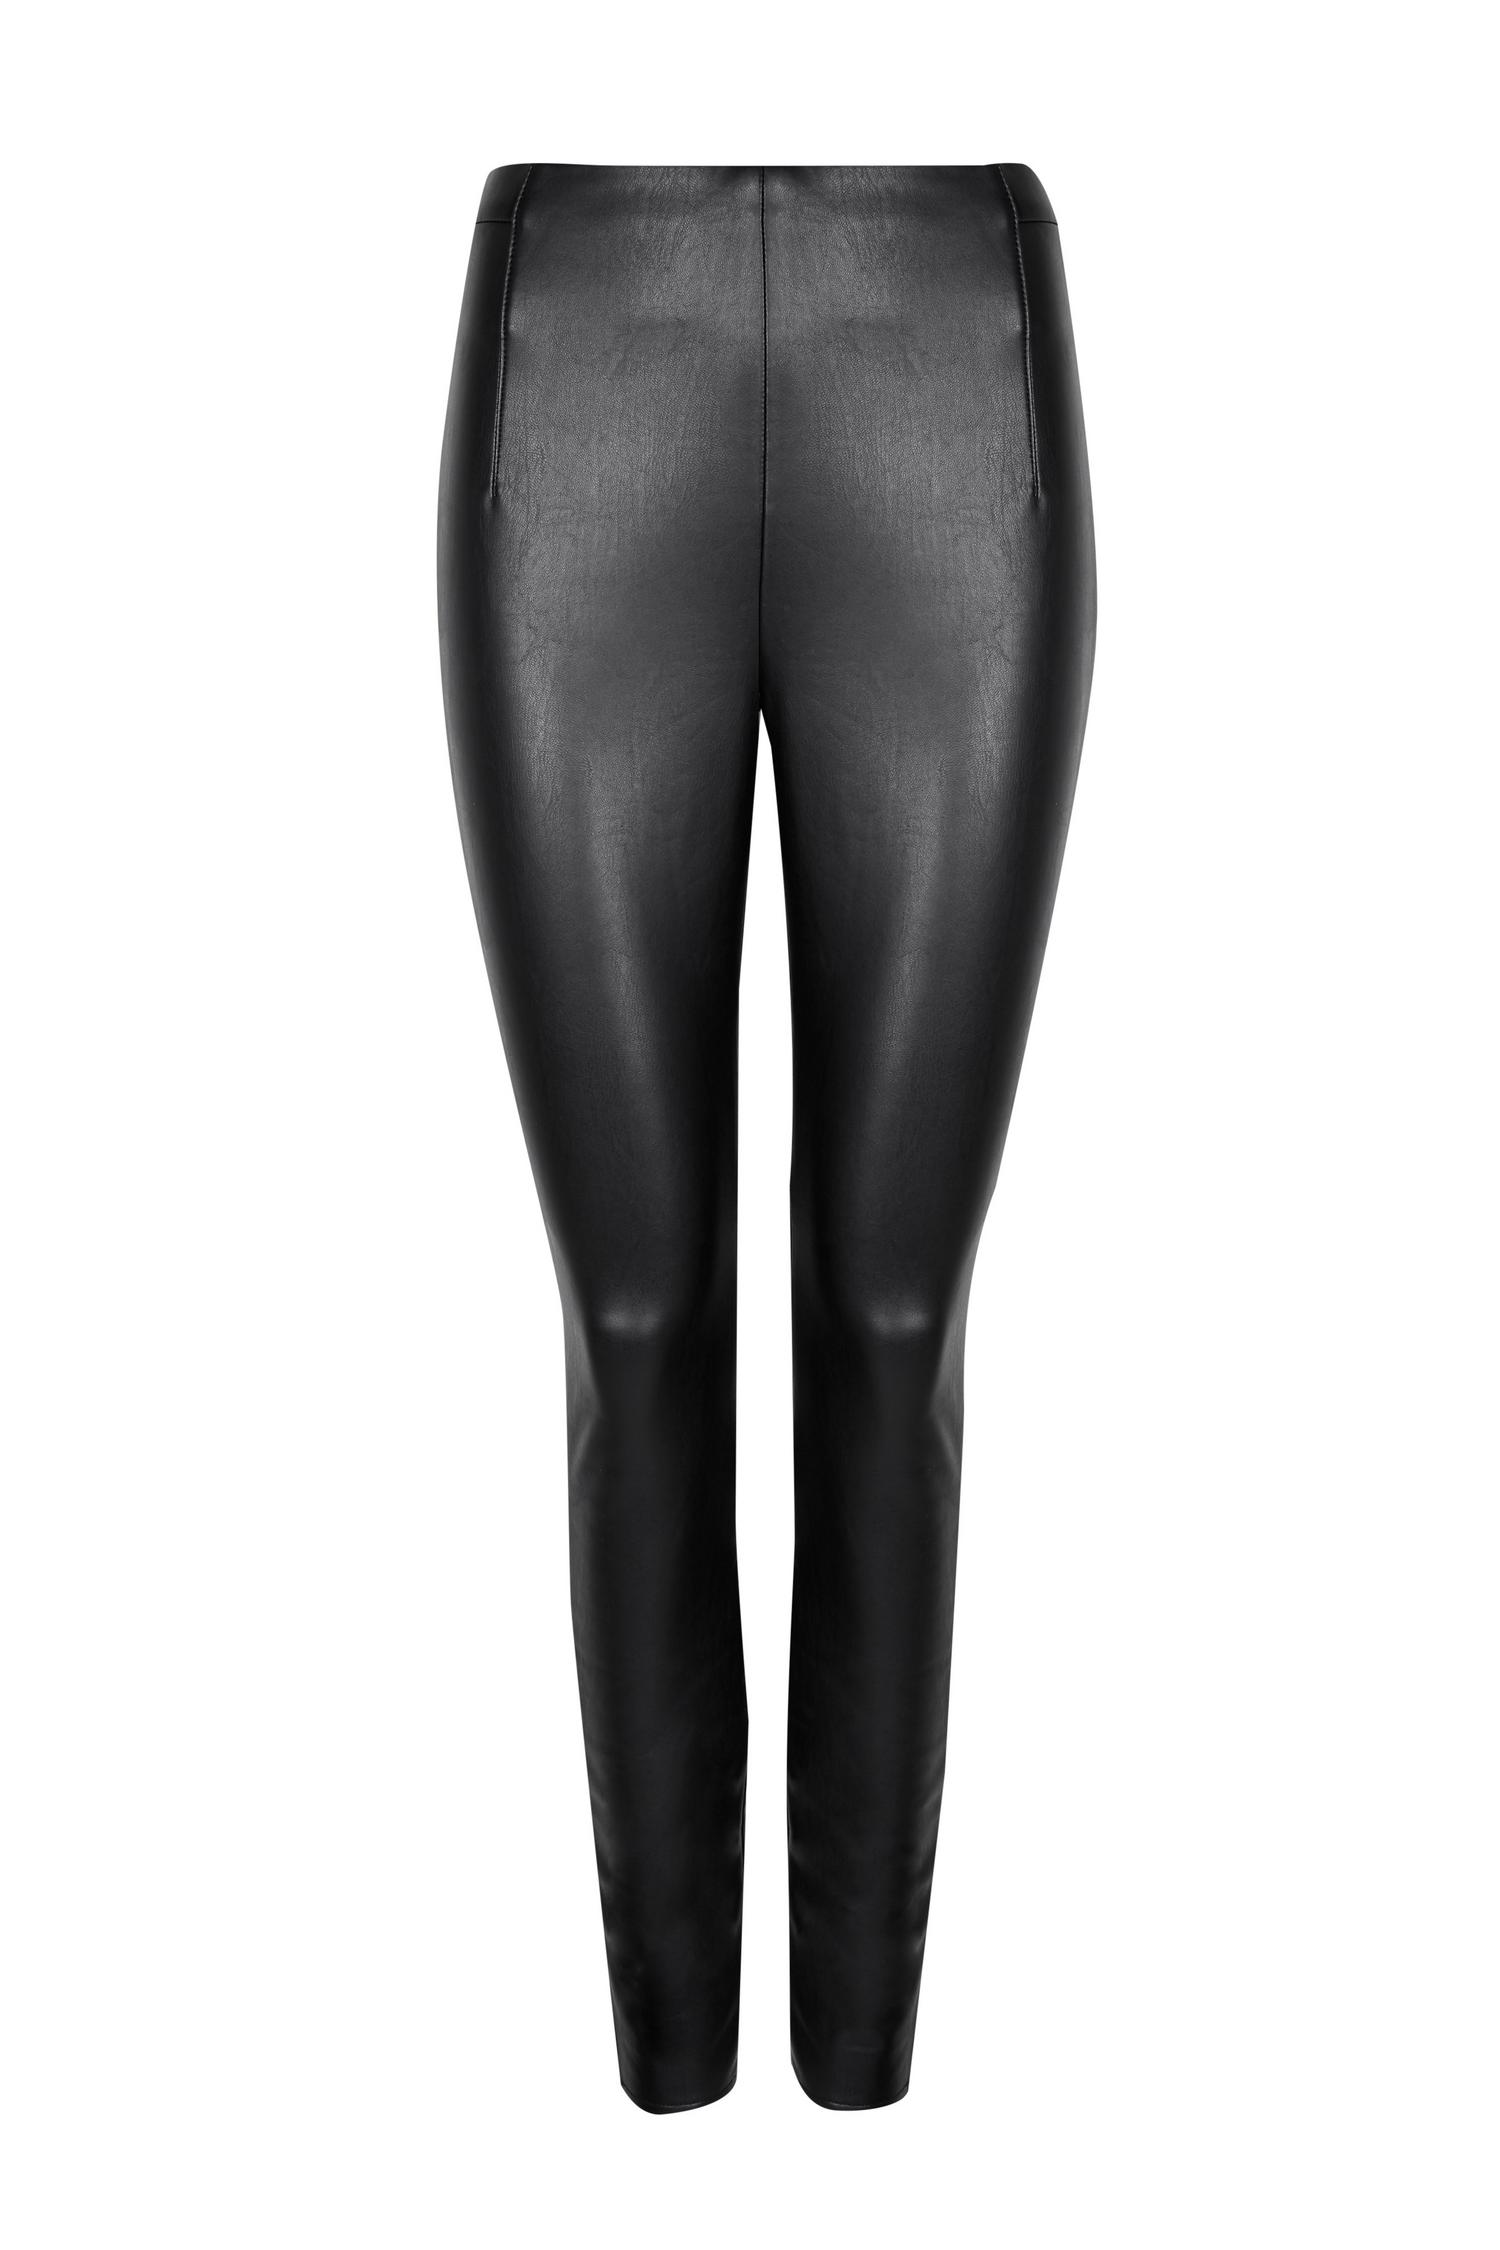 105 PETITE Black Faux Leather Legging image number 4